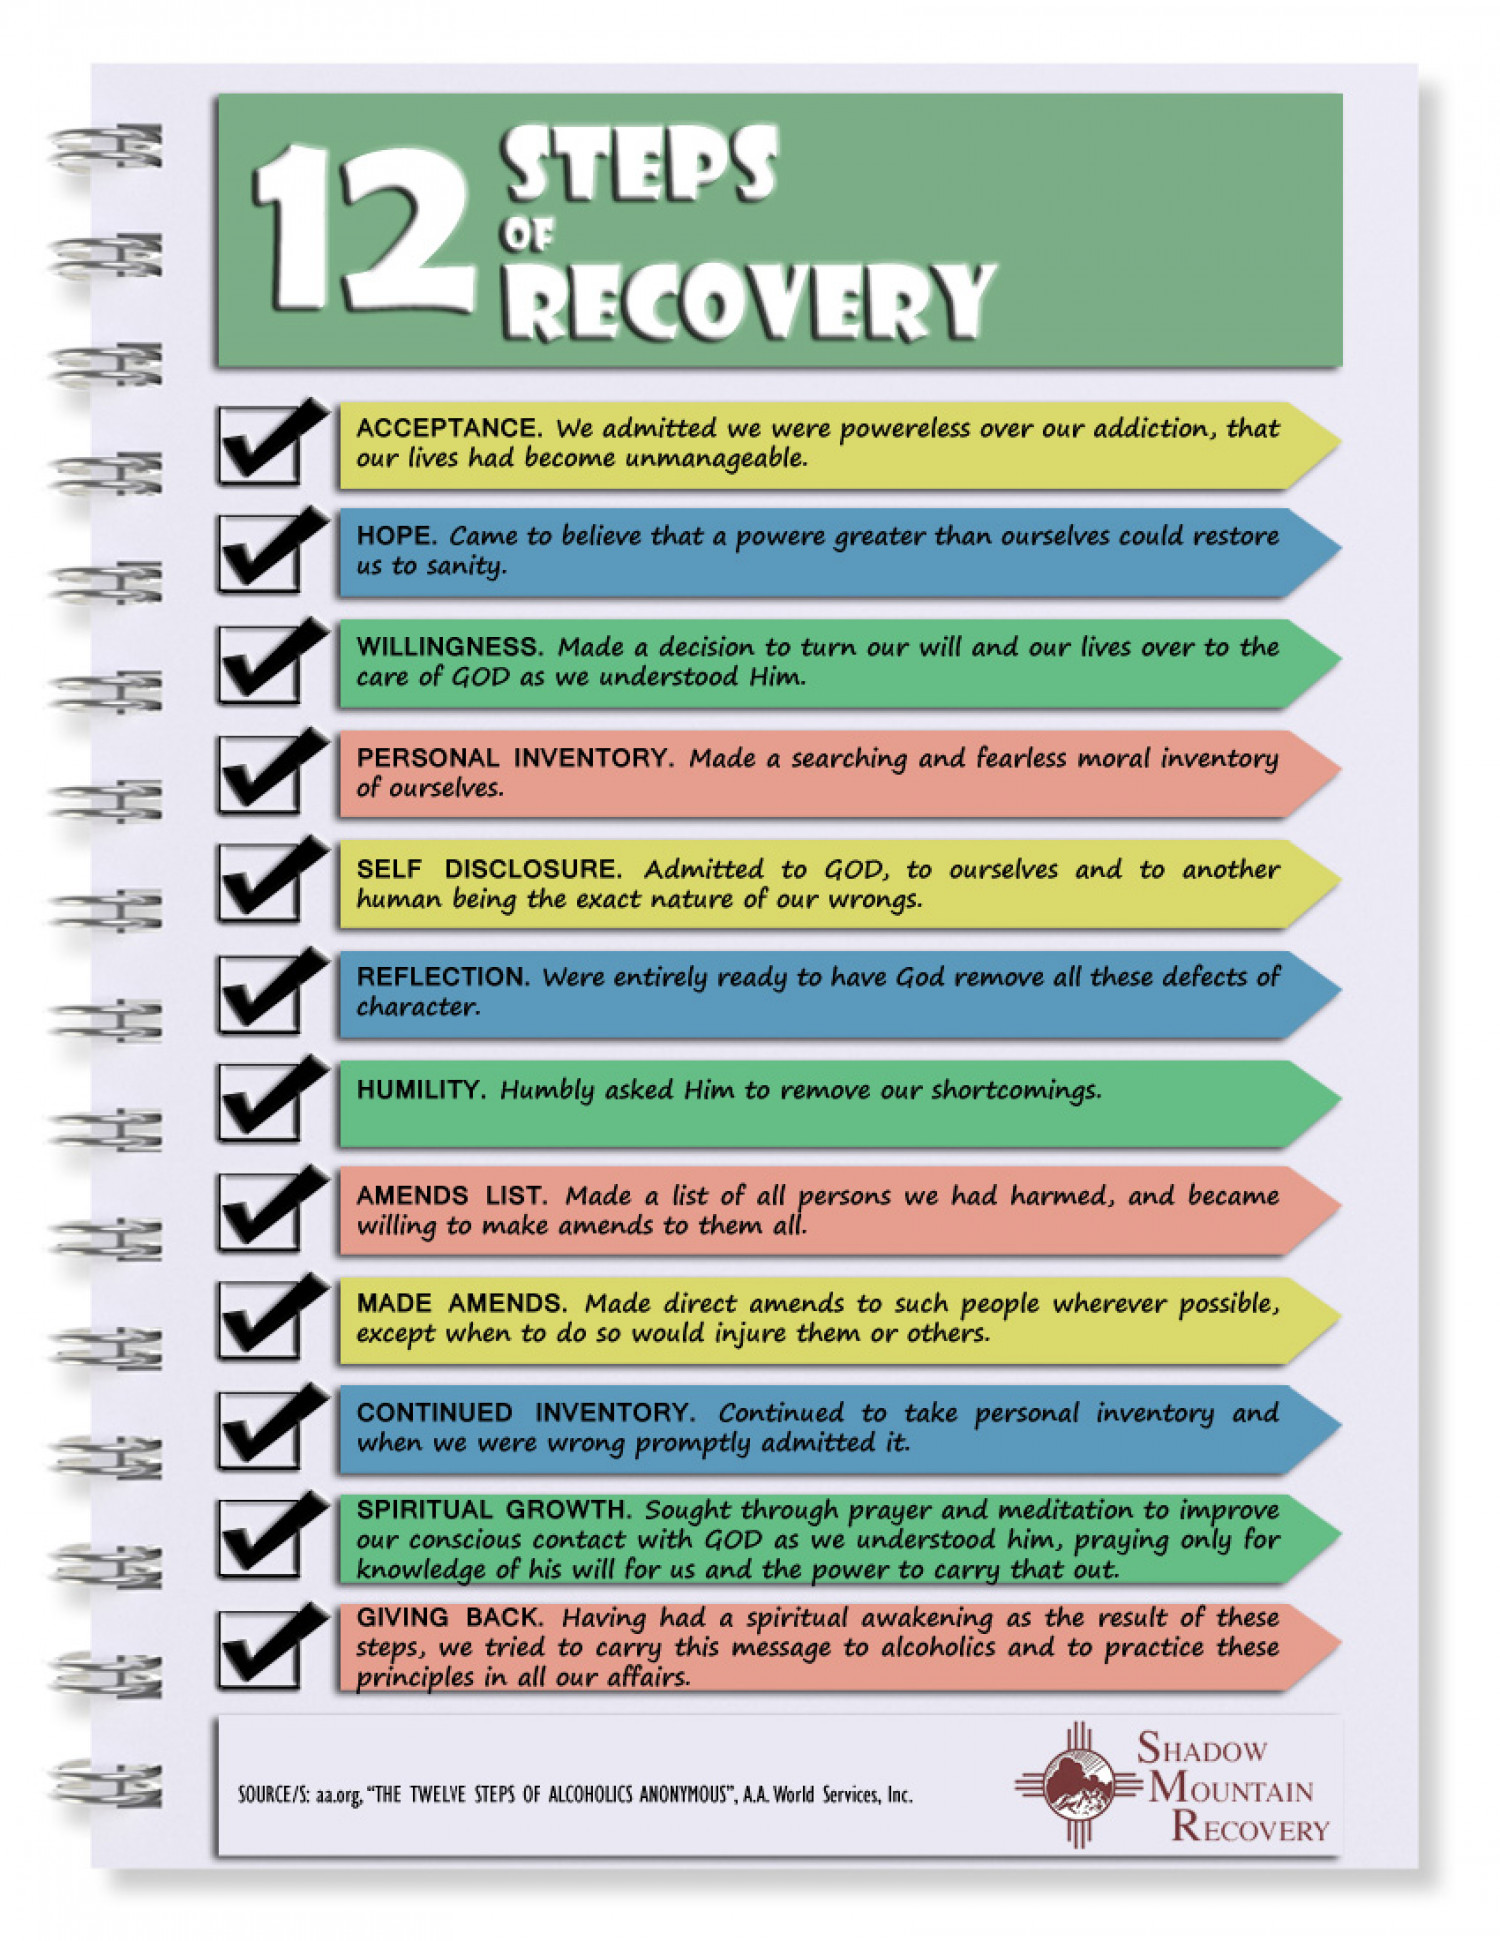 12 Steps of Recovery Infographic